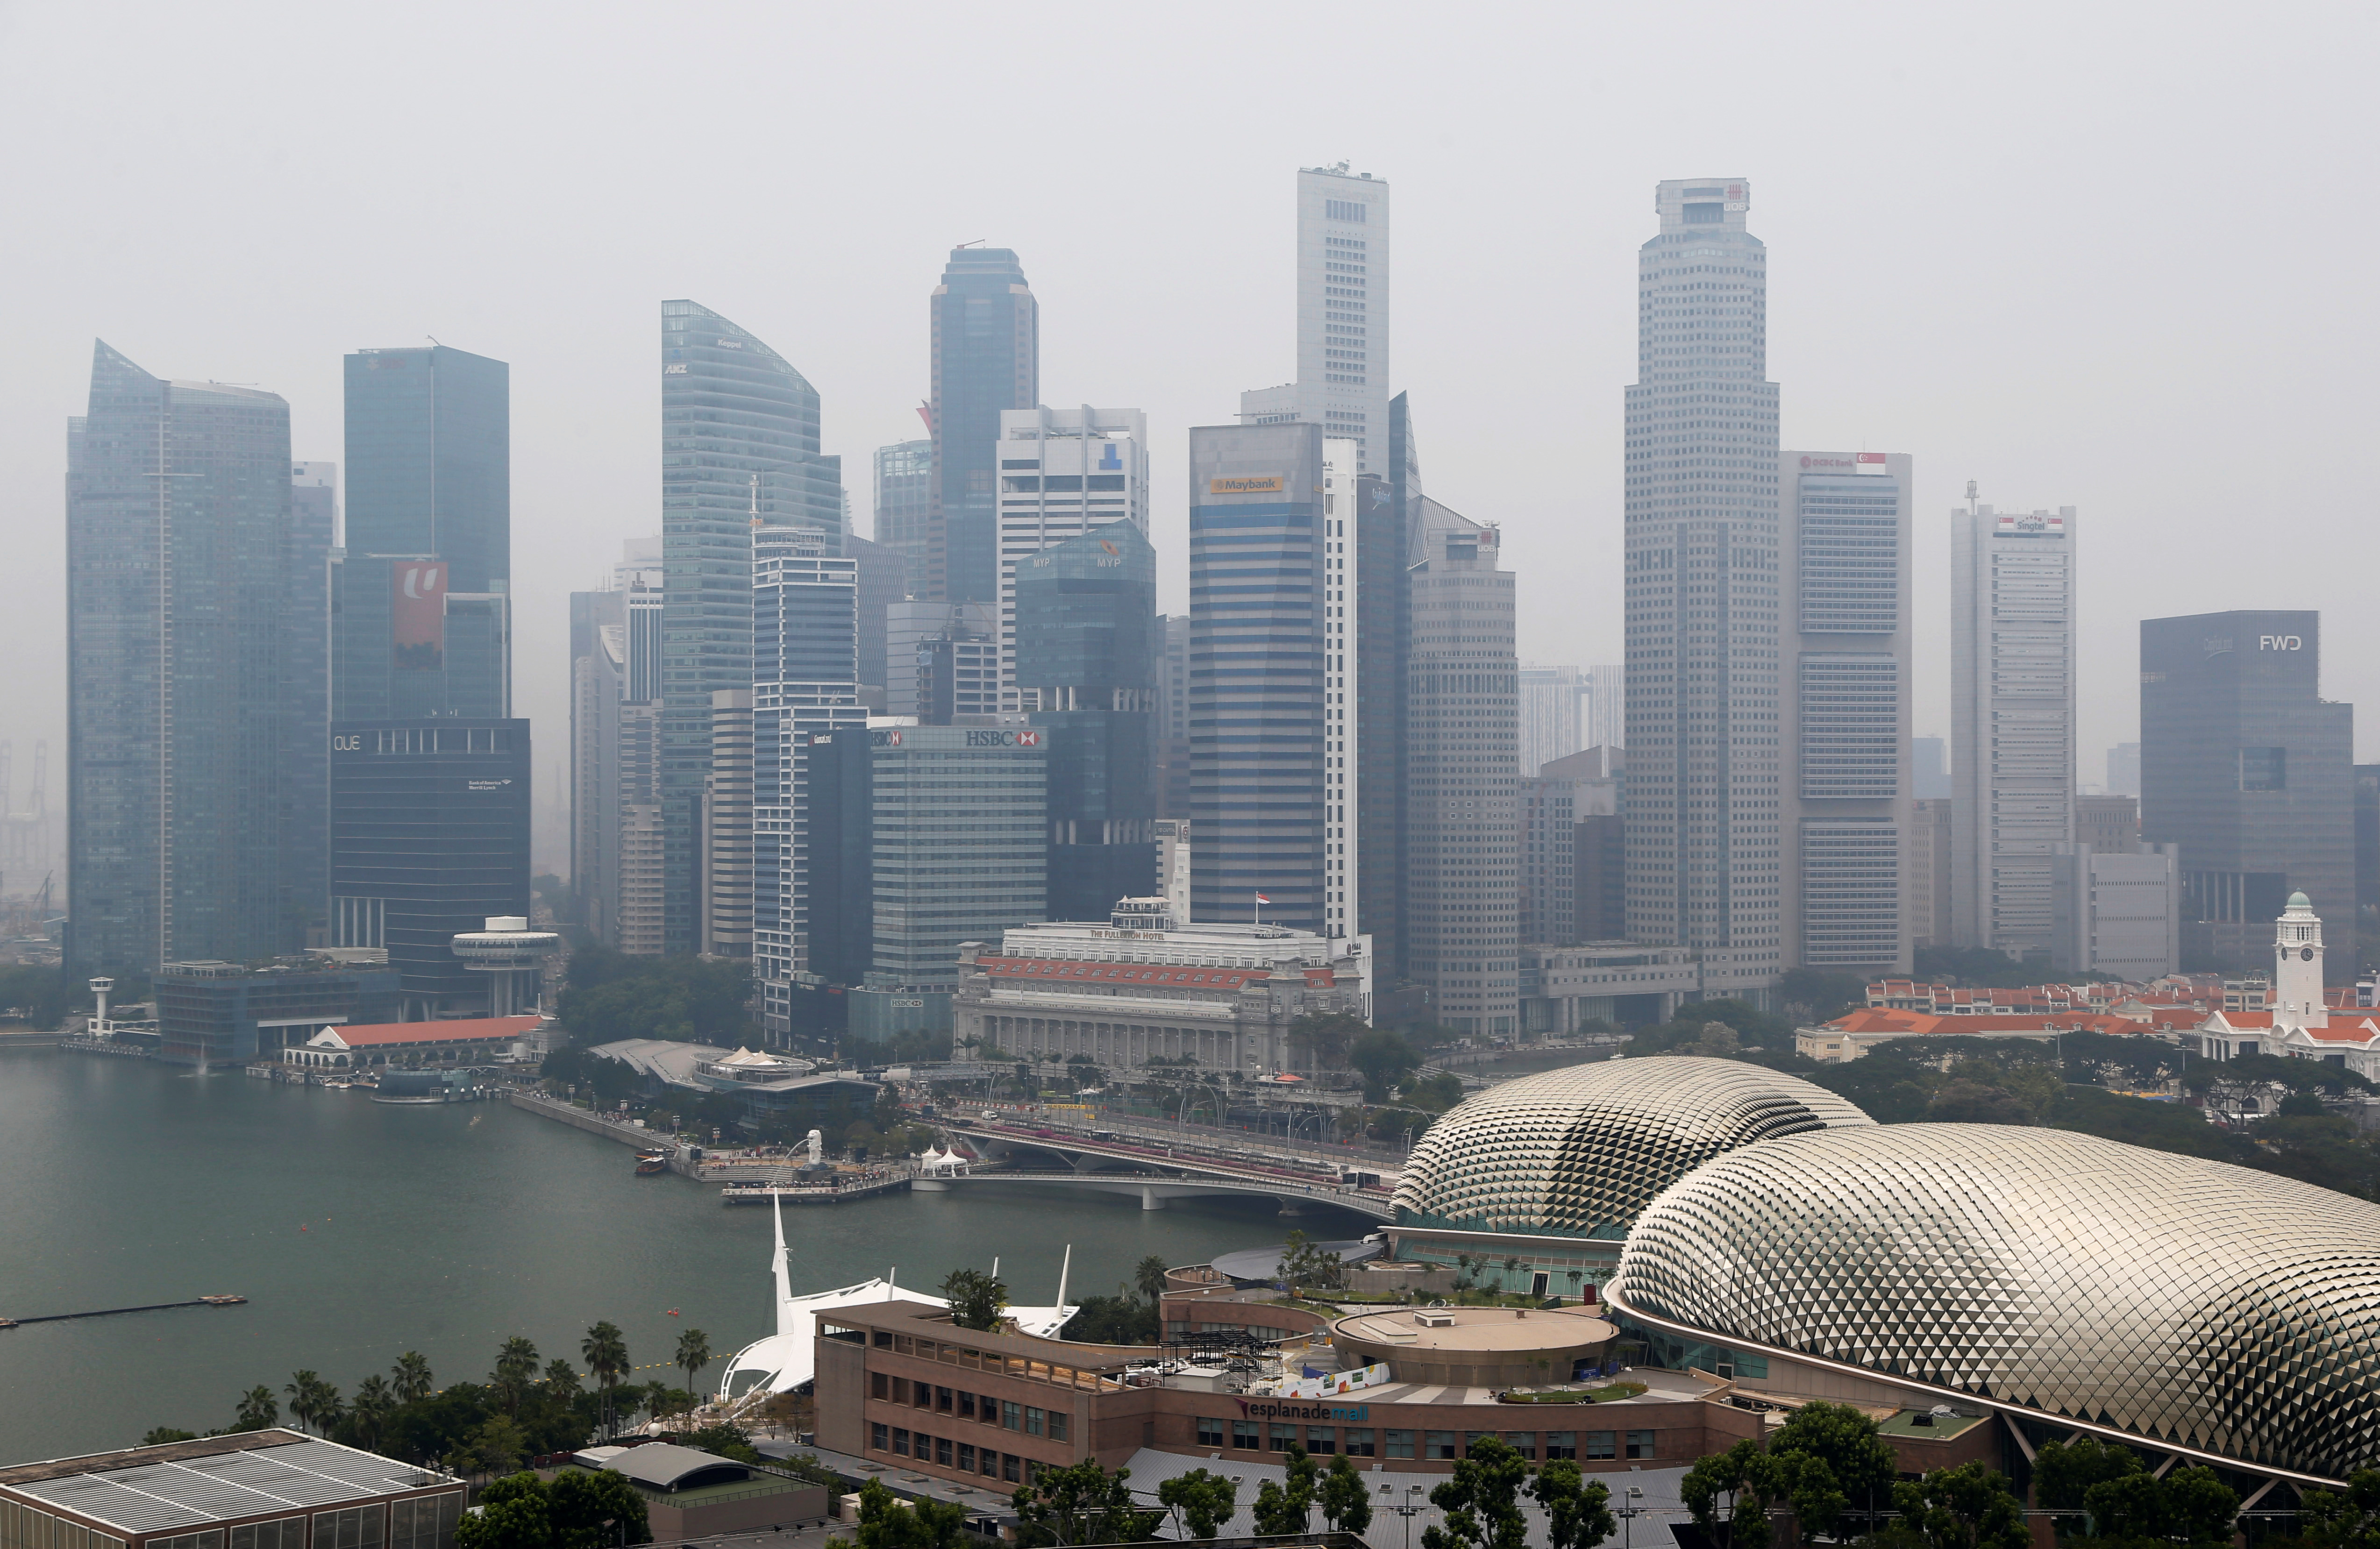 The financial district is seen shrouded by haze in Singapore September 18, 2019. REUTERS/Feline Lim